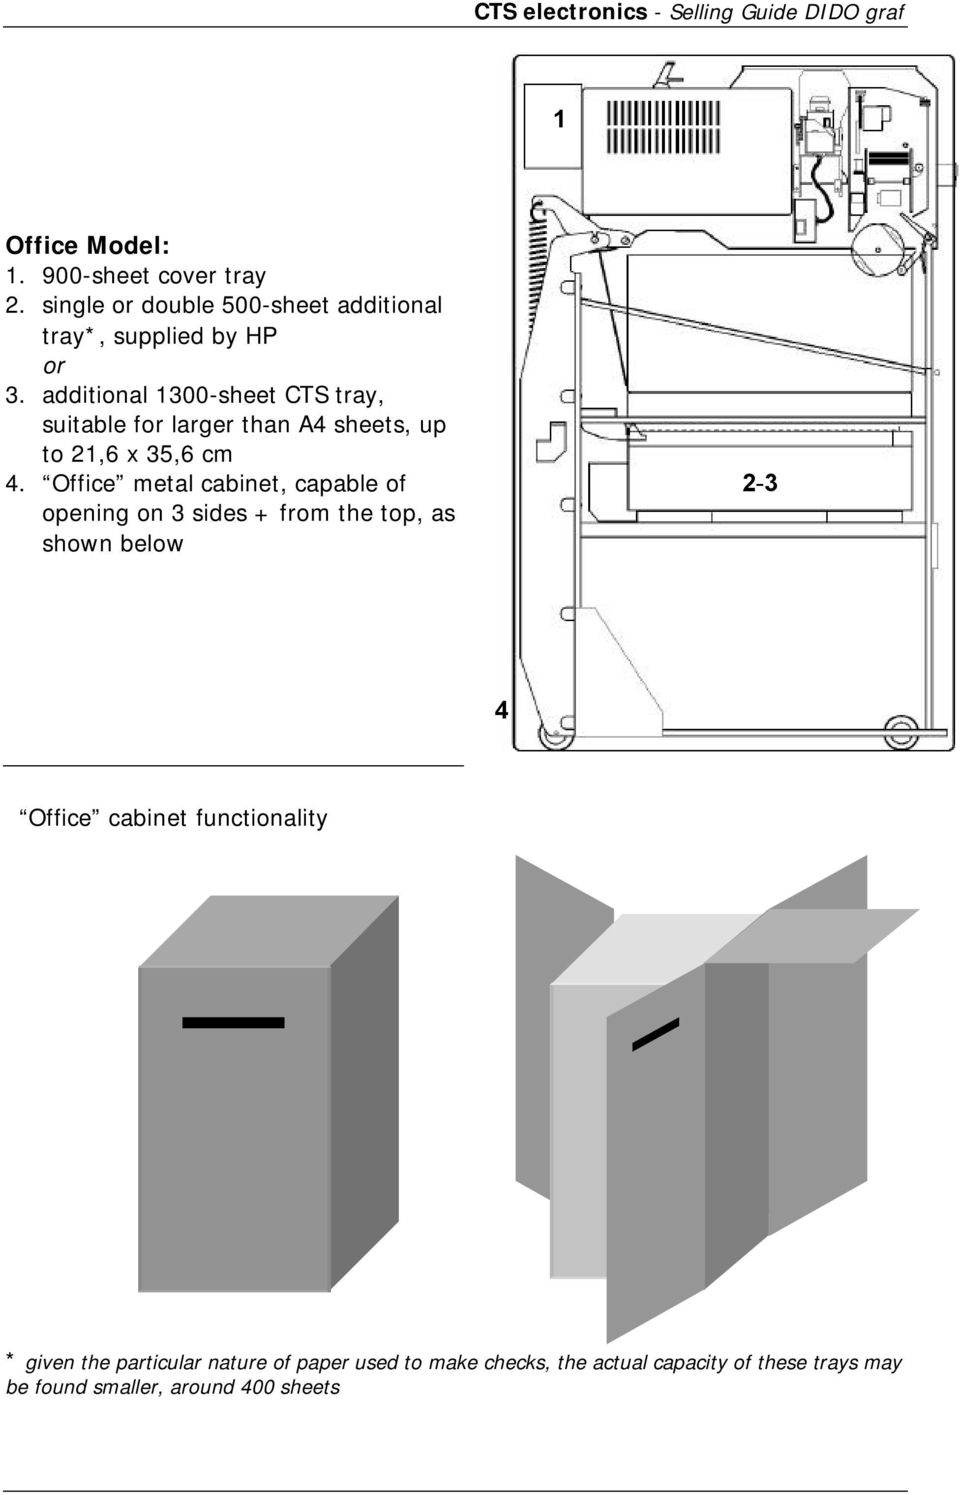 Office metal cabinet, capable of opening on 3 sides + from the top, as shown below 2-3 4 Office cabinet